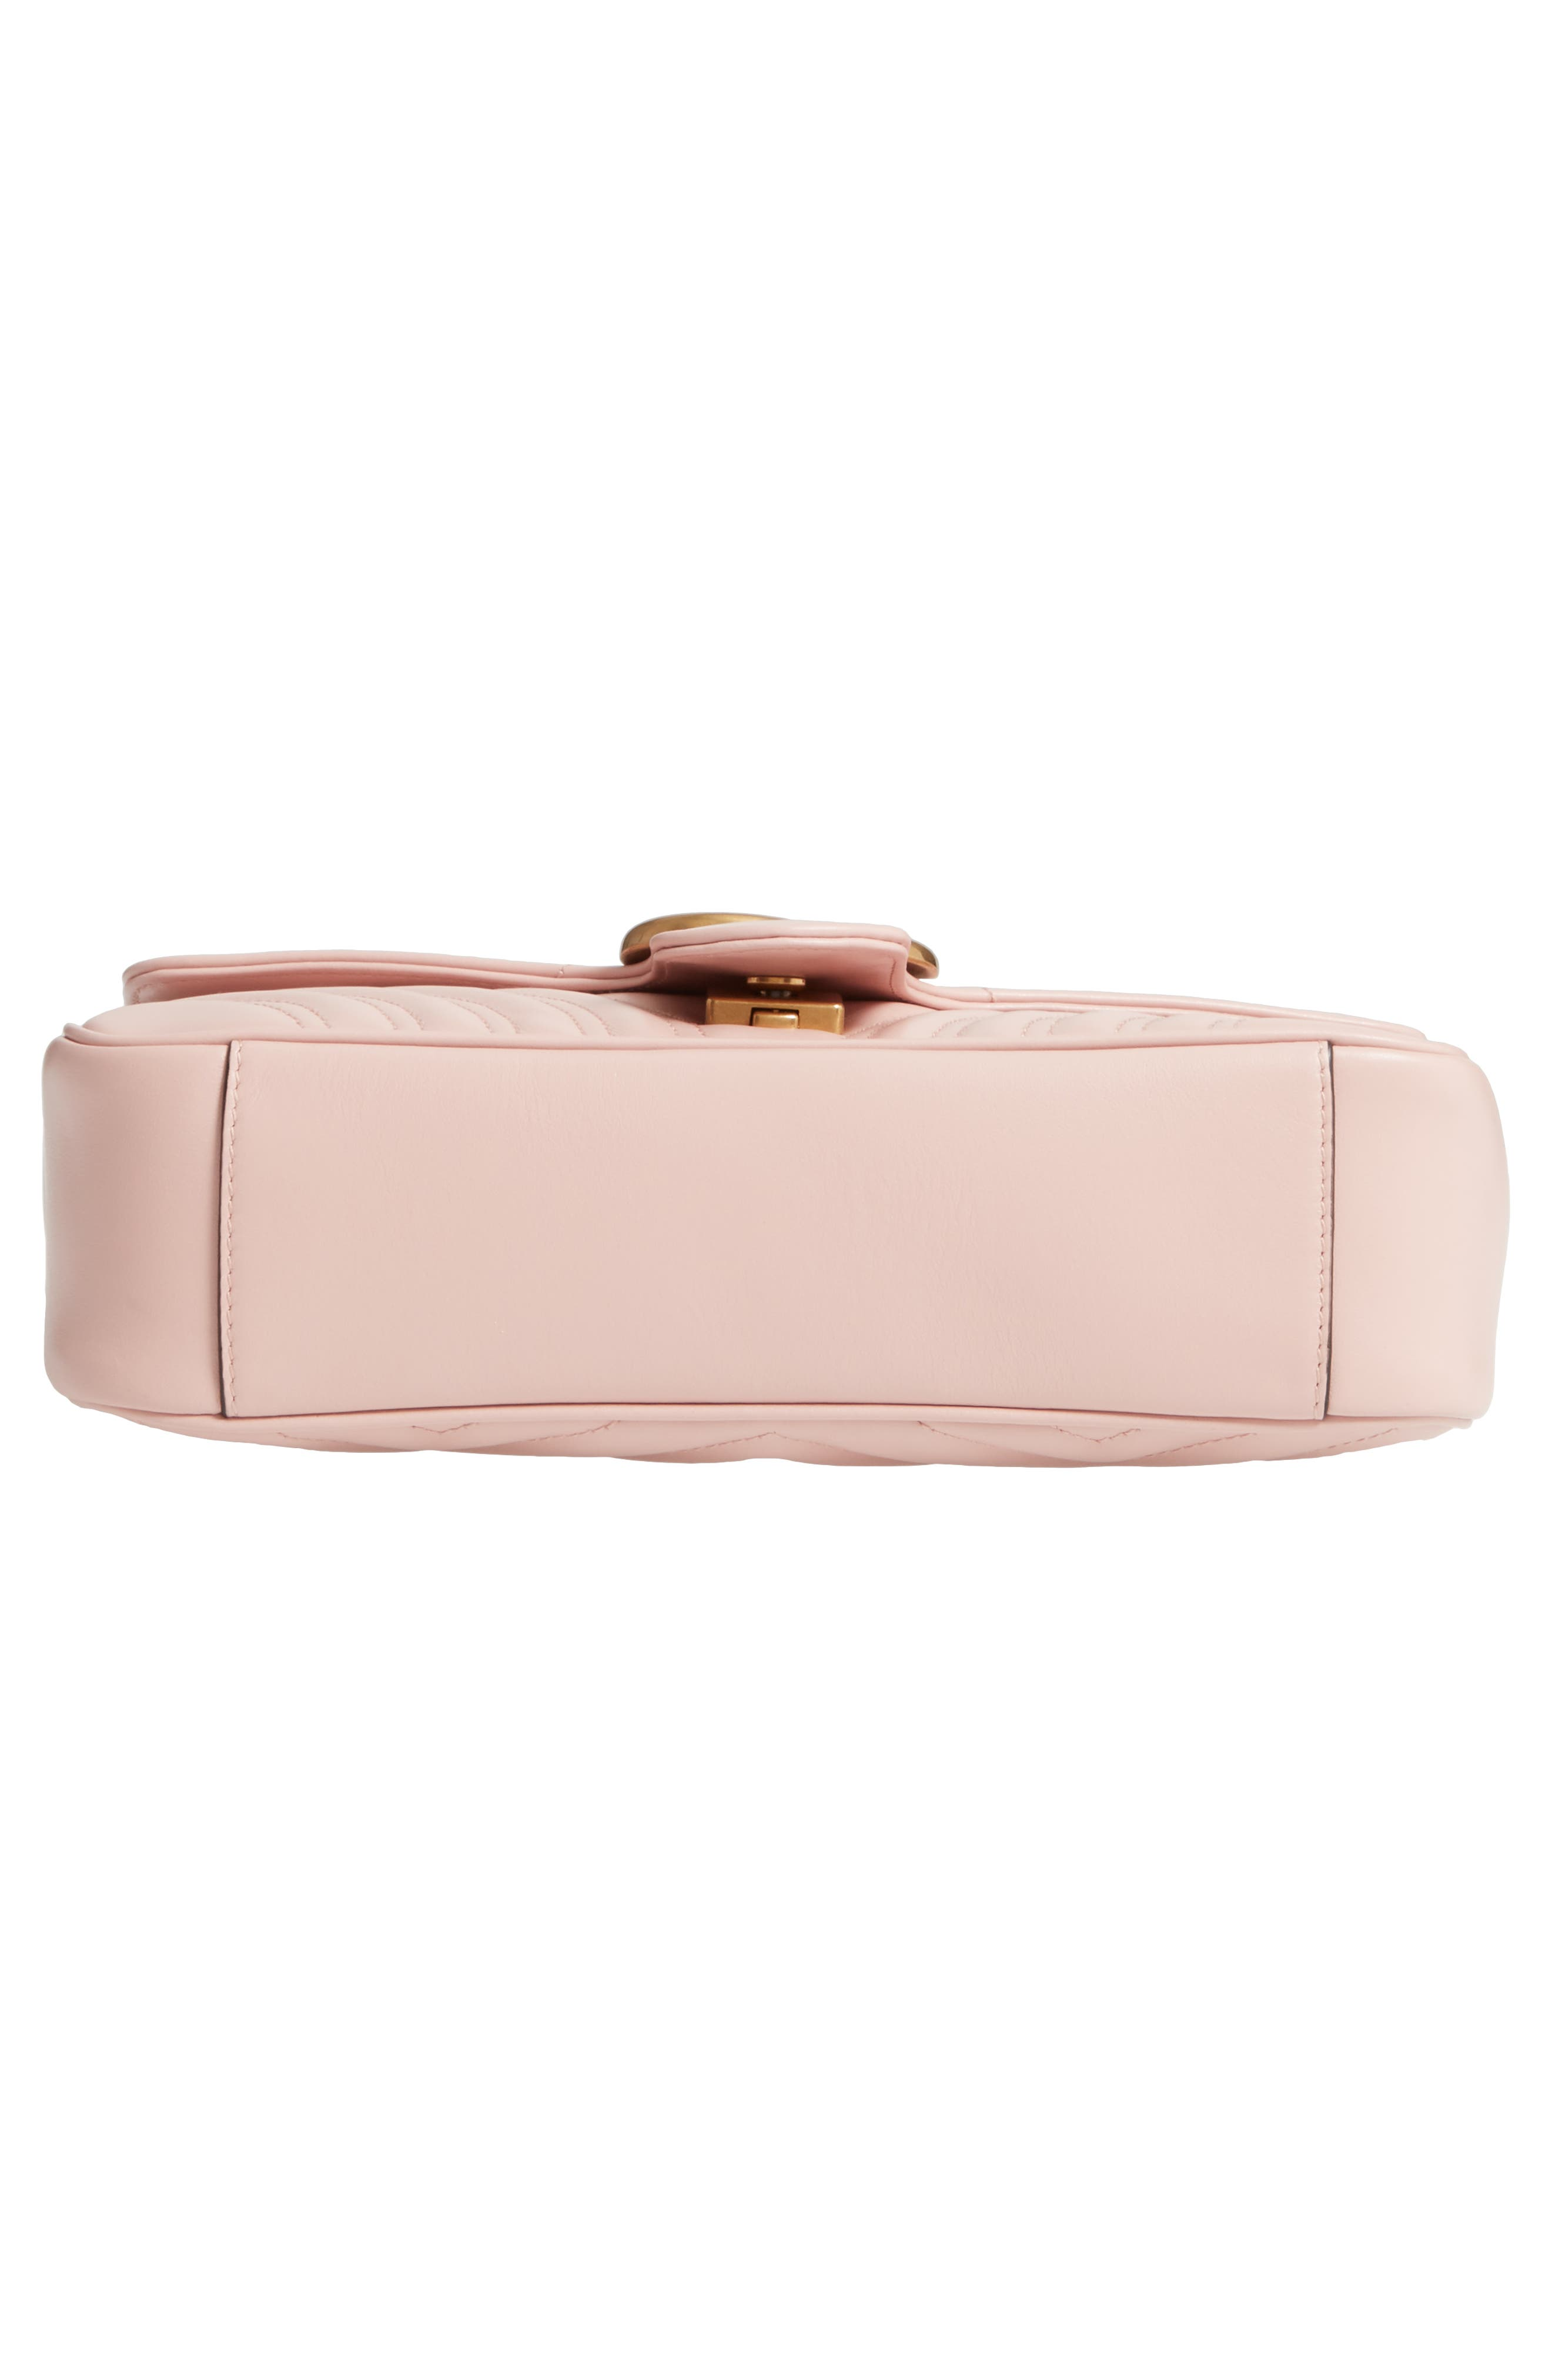 Small GG Marmont 2.0 Matelassé Leather Shoulder Bag,                             Alternate thumbnail 6, color,                             PERFECT PINK/ PERFECT PINK